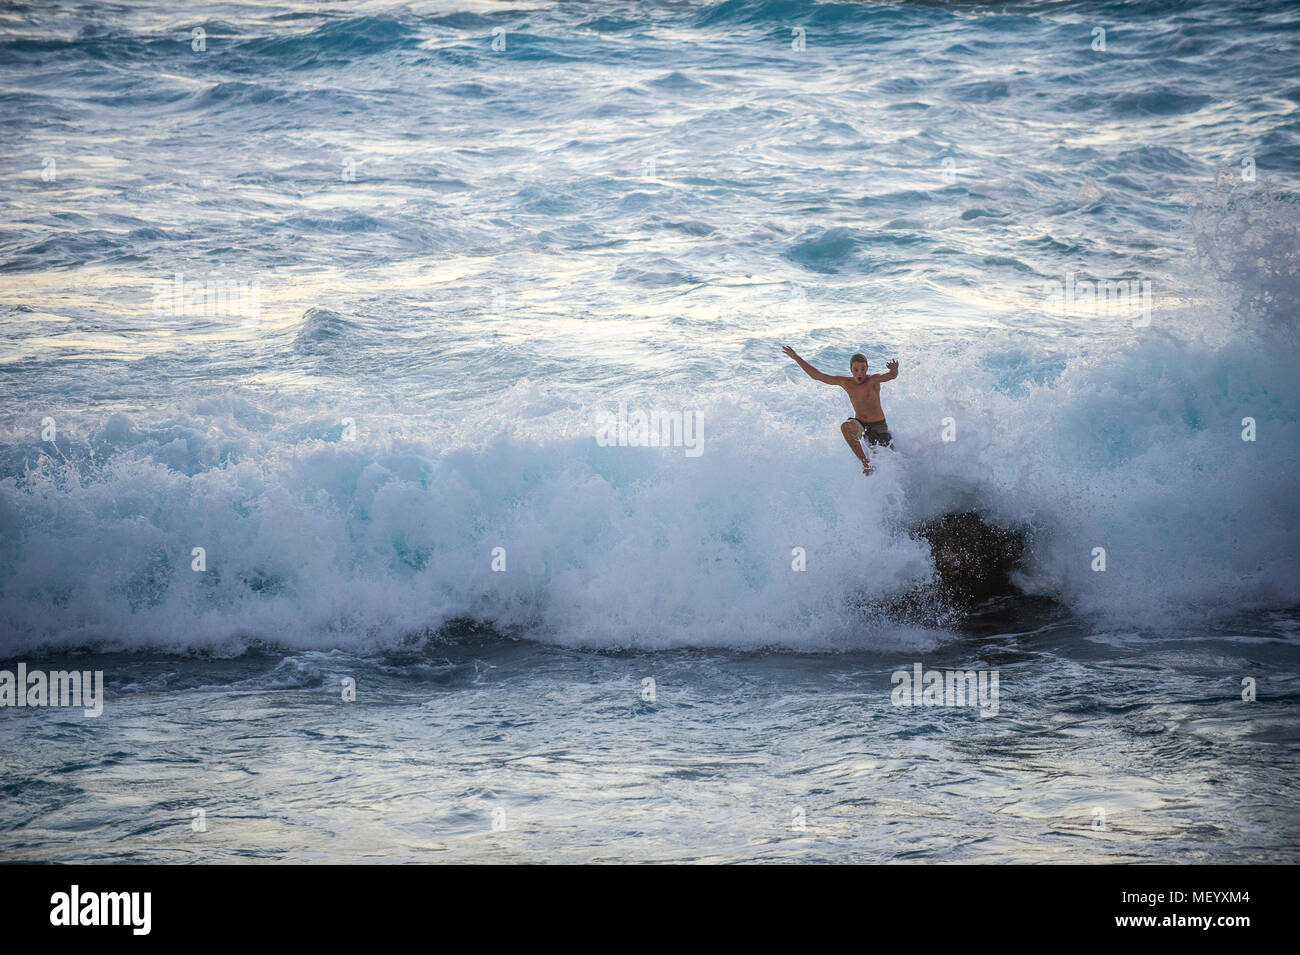 A young man jumps into a wave at the Pointe au Sel on Réunion Island in the Indian Ocean. - Stock Image